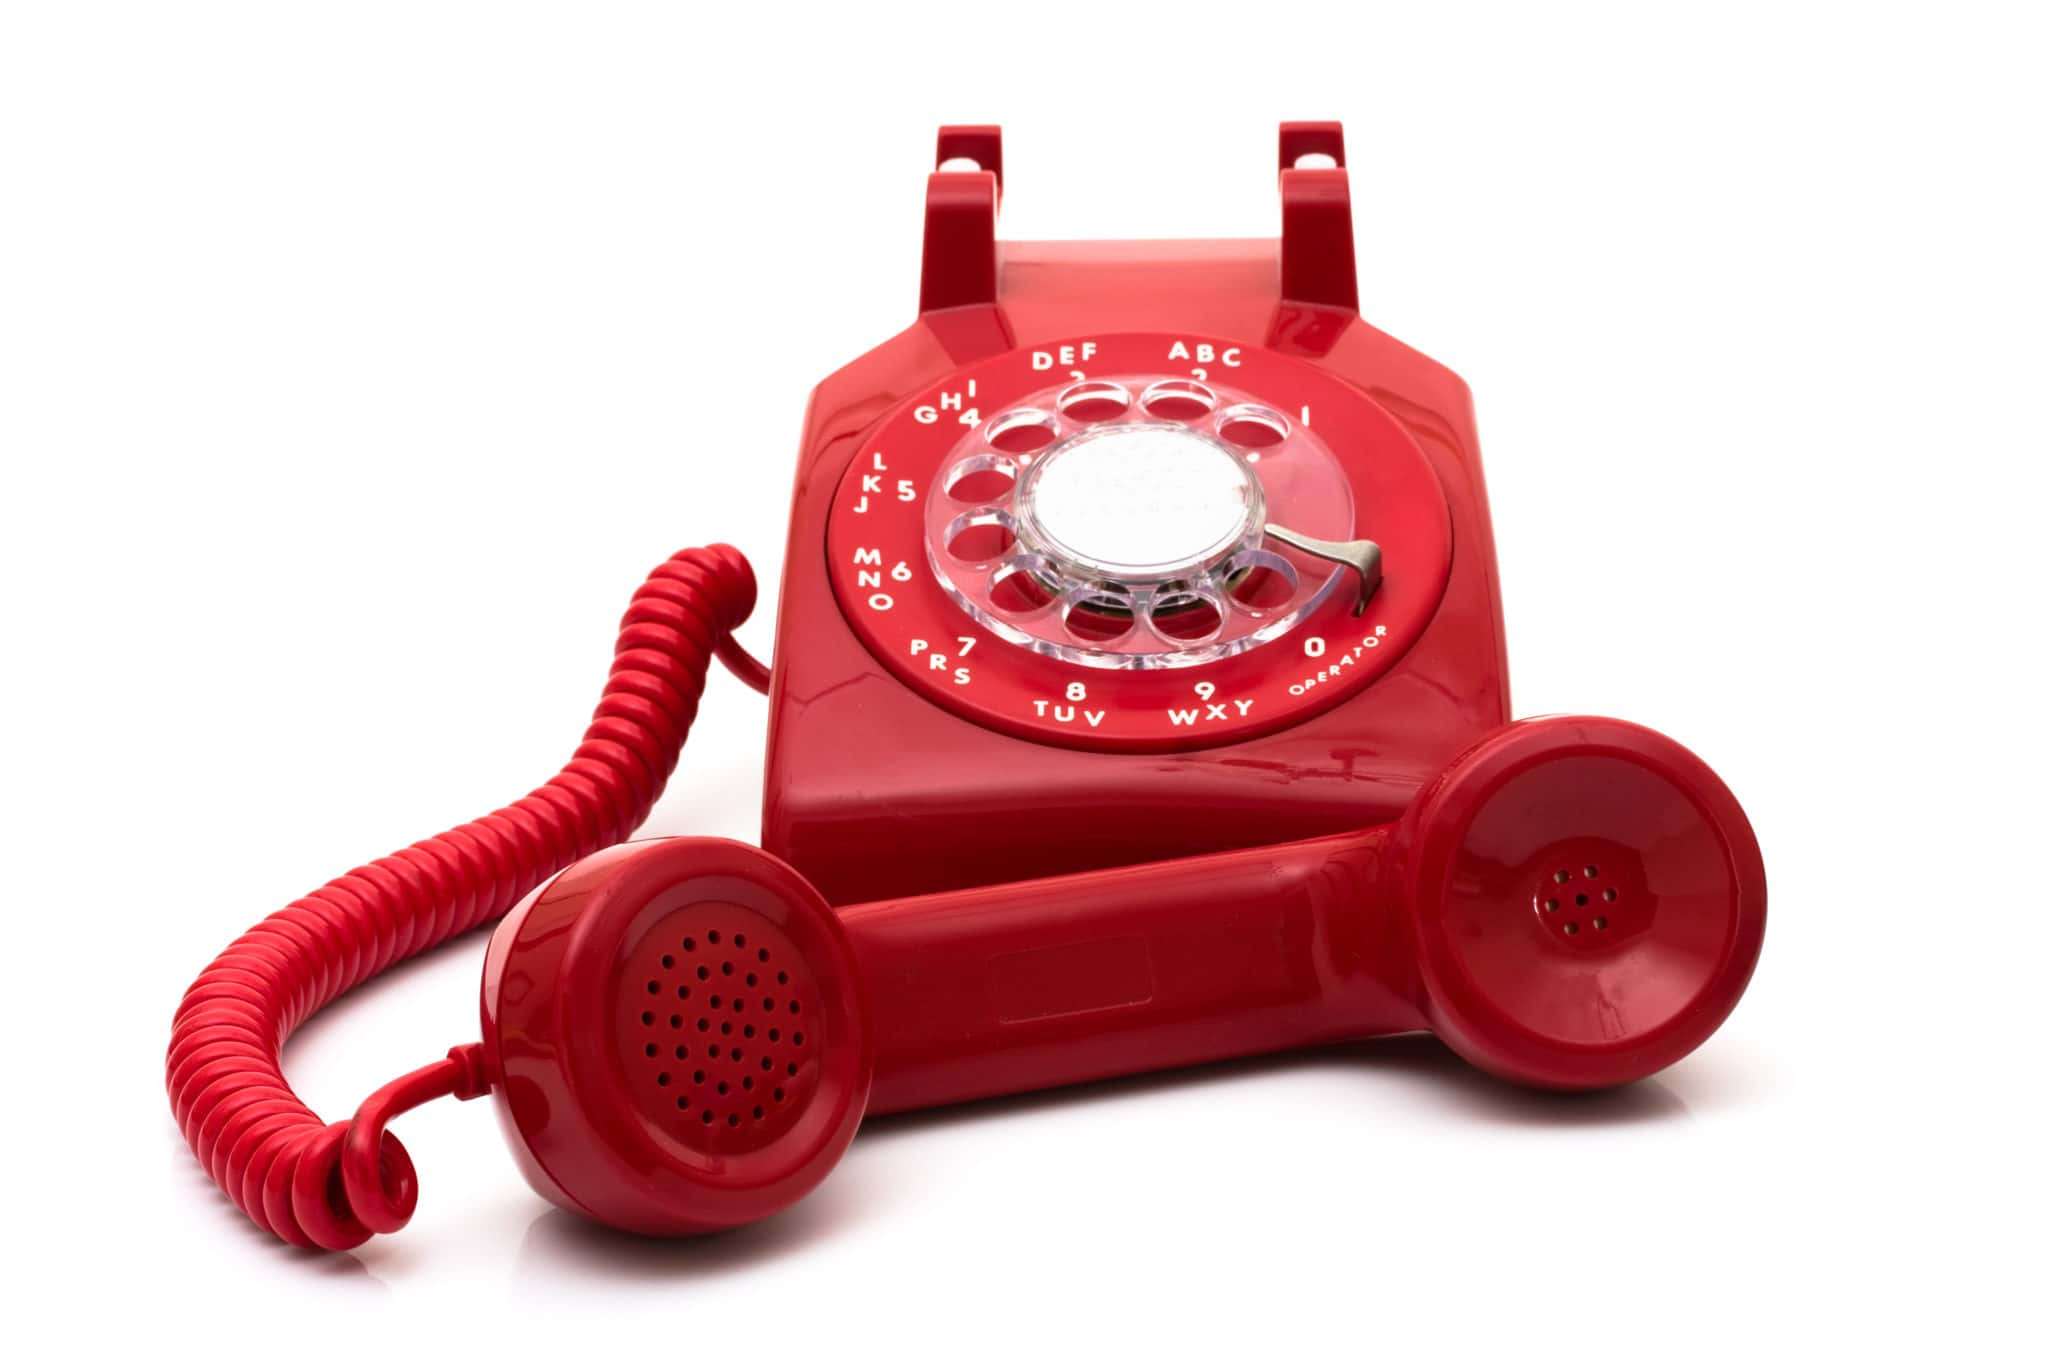 Cheapest Business Phone Lines, Calls and Truly Unlimited Broadband